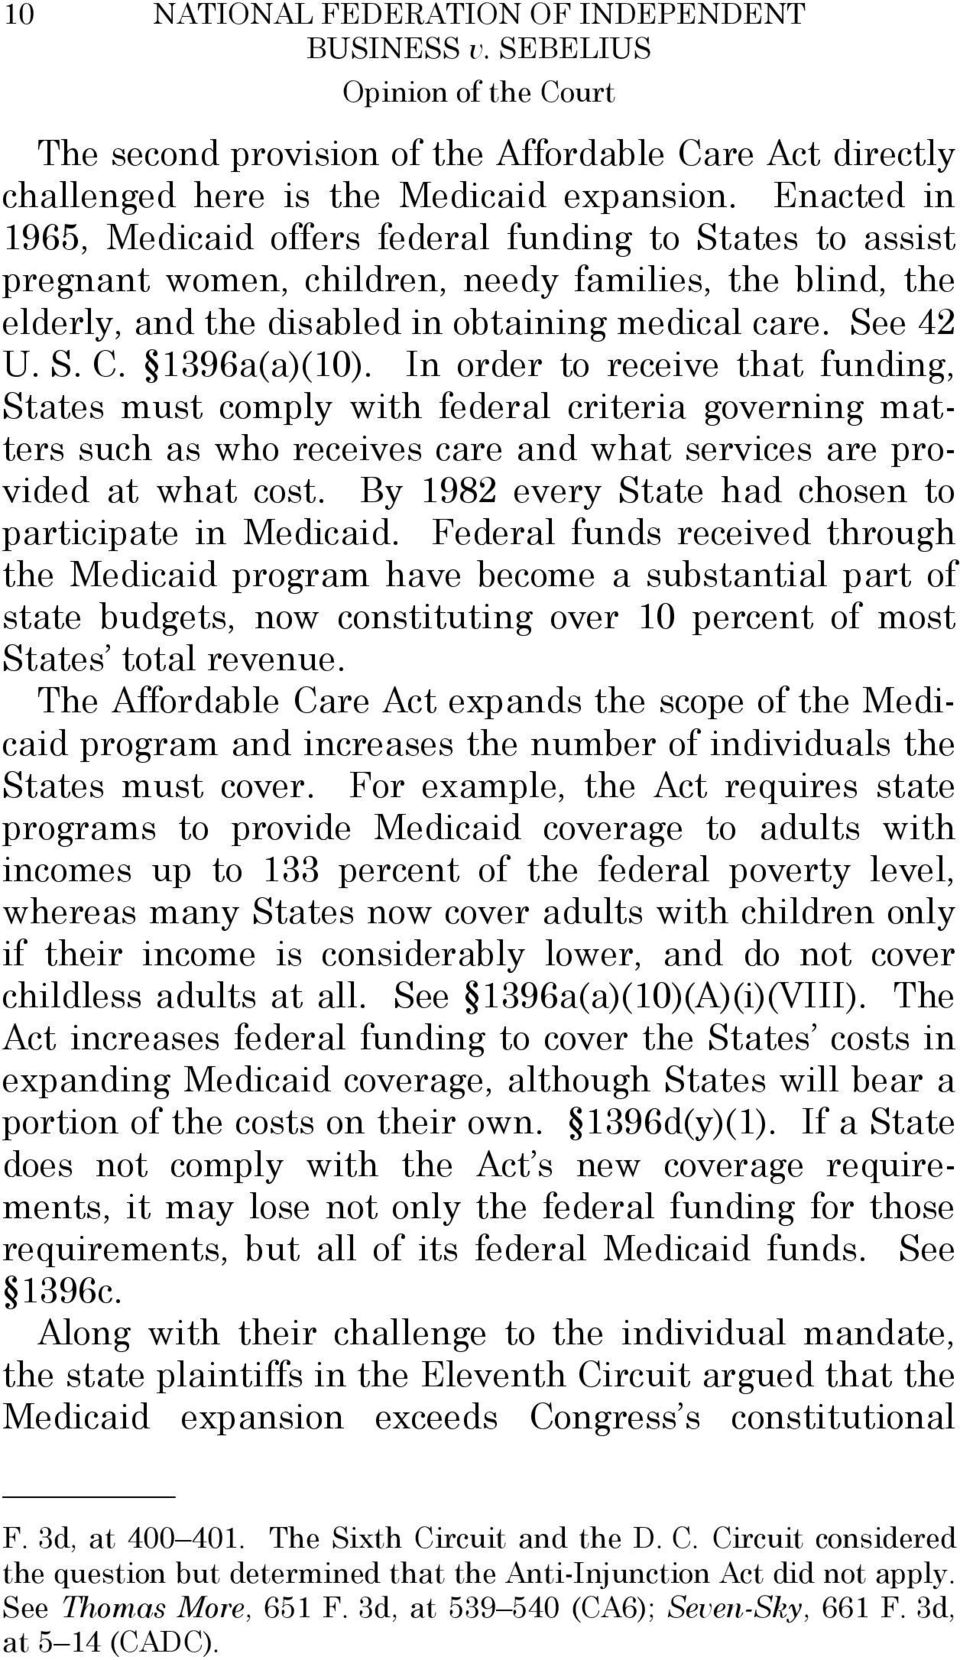 1396a(a)(10). In order to receive that funding, States must comply with federal criteria governing matters such as who receives care and what services are provided at what cost.